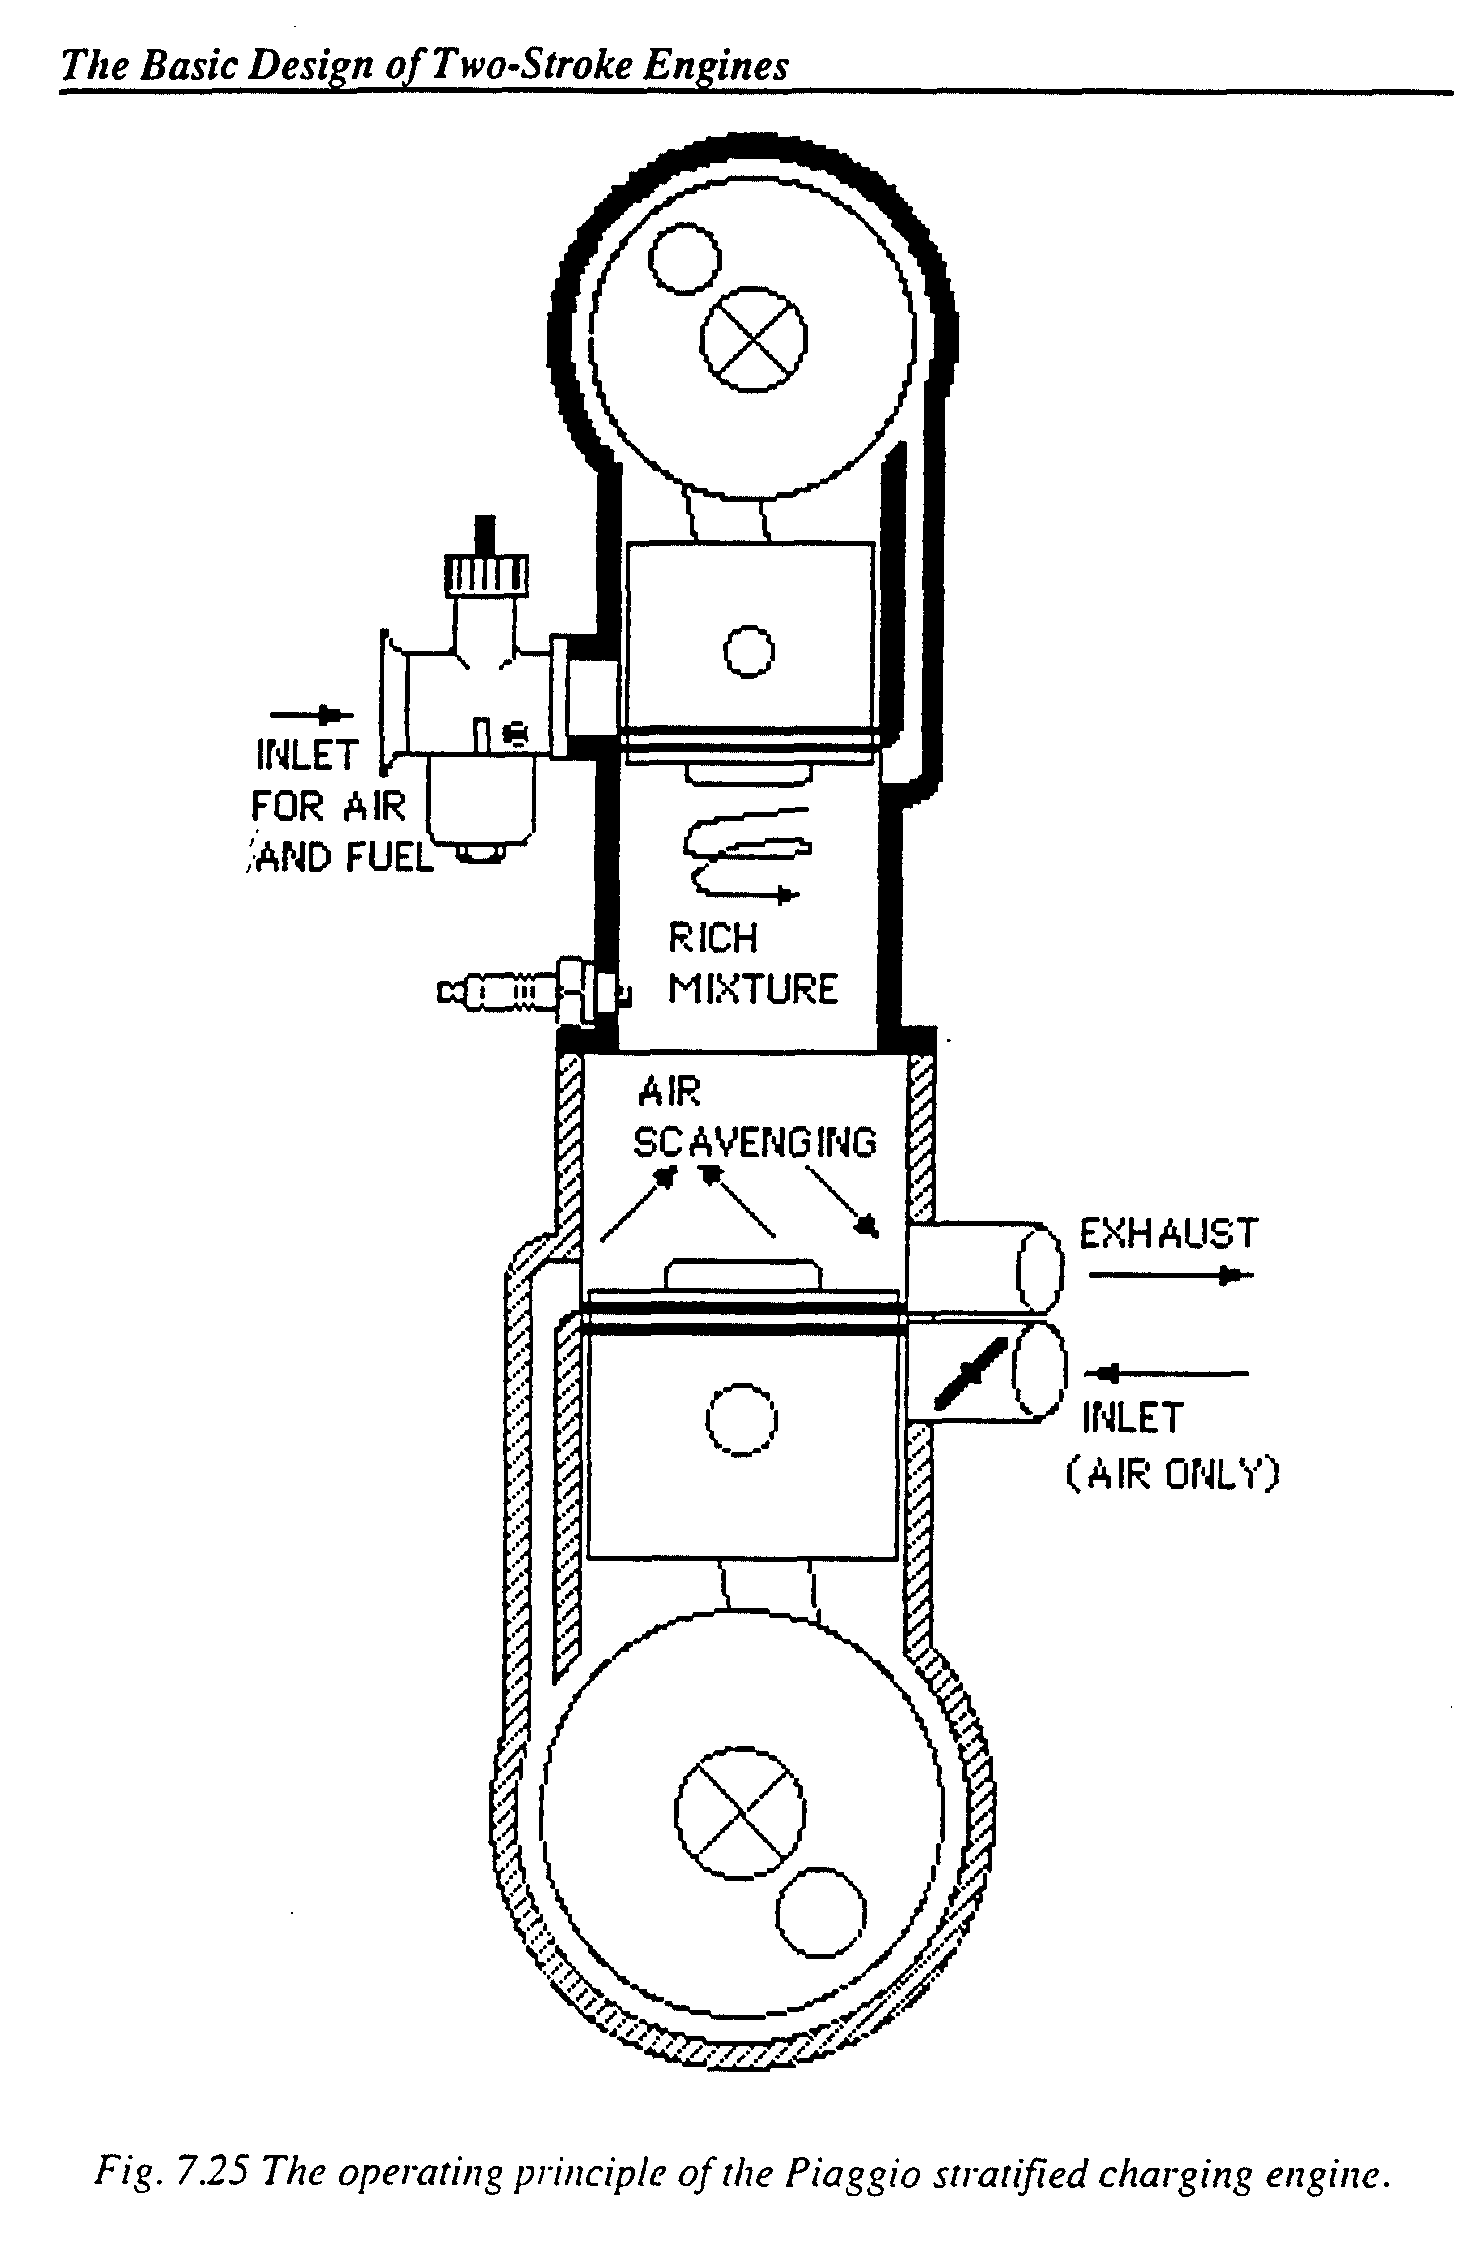 Wo1994023191a1 Two Cycle Engine With Reduced Hydrocarbon Emissions Sulzer Diagram Figure Imgf000086 0001